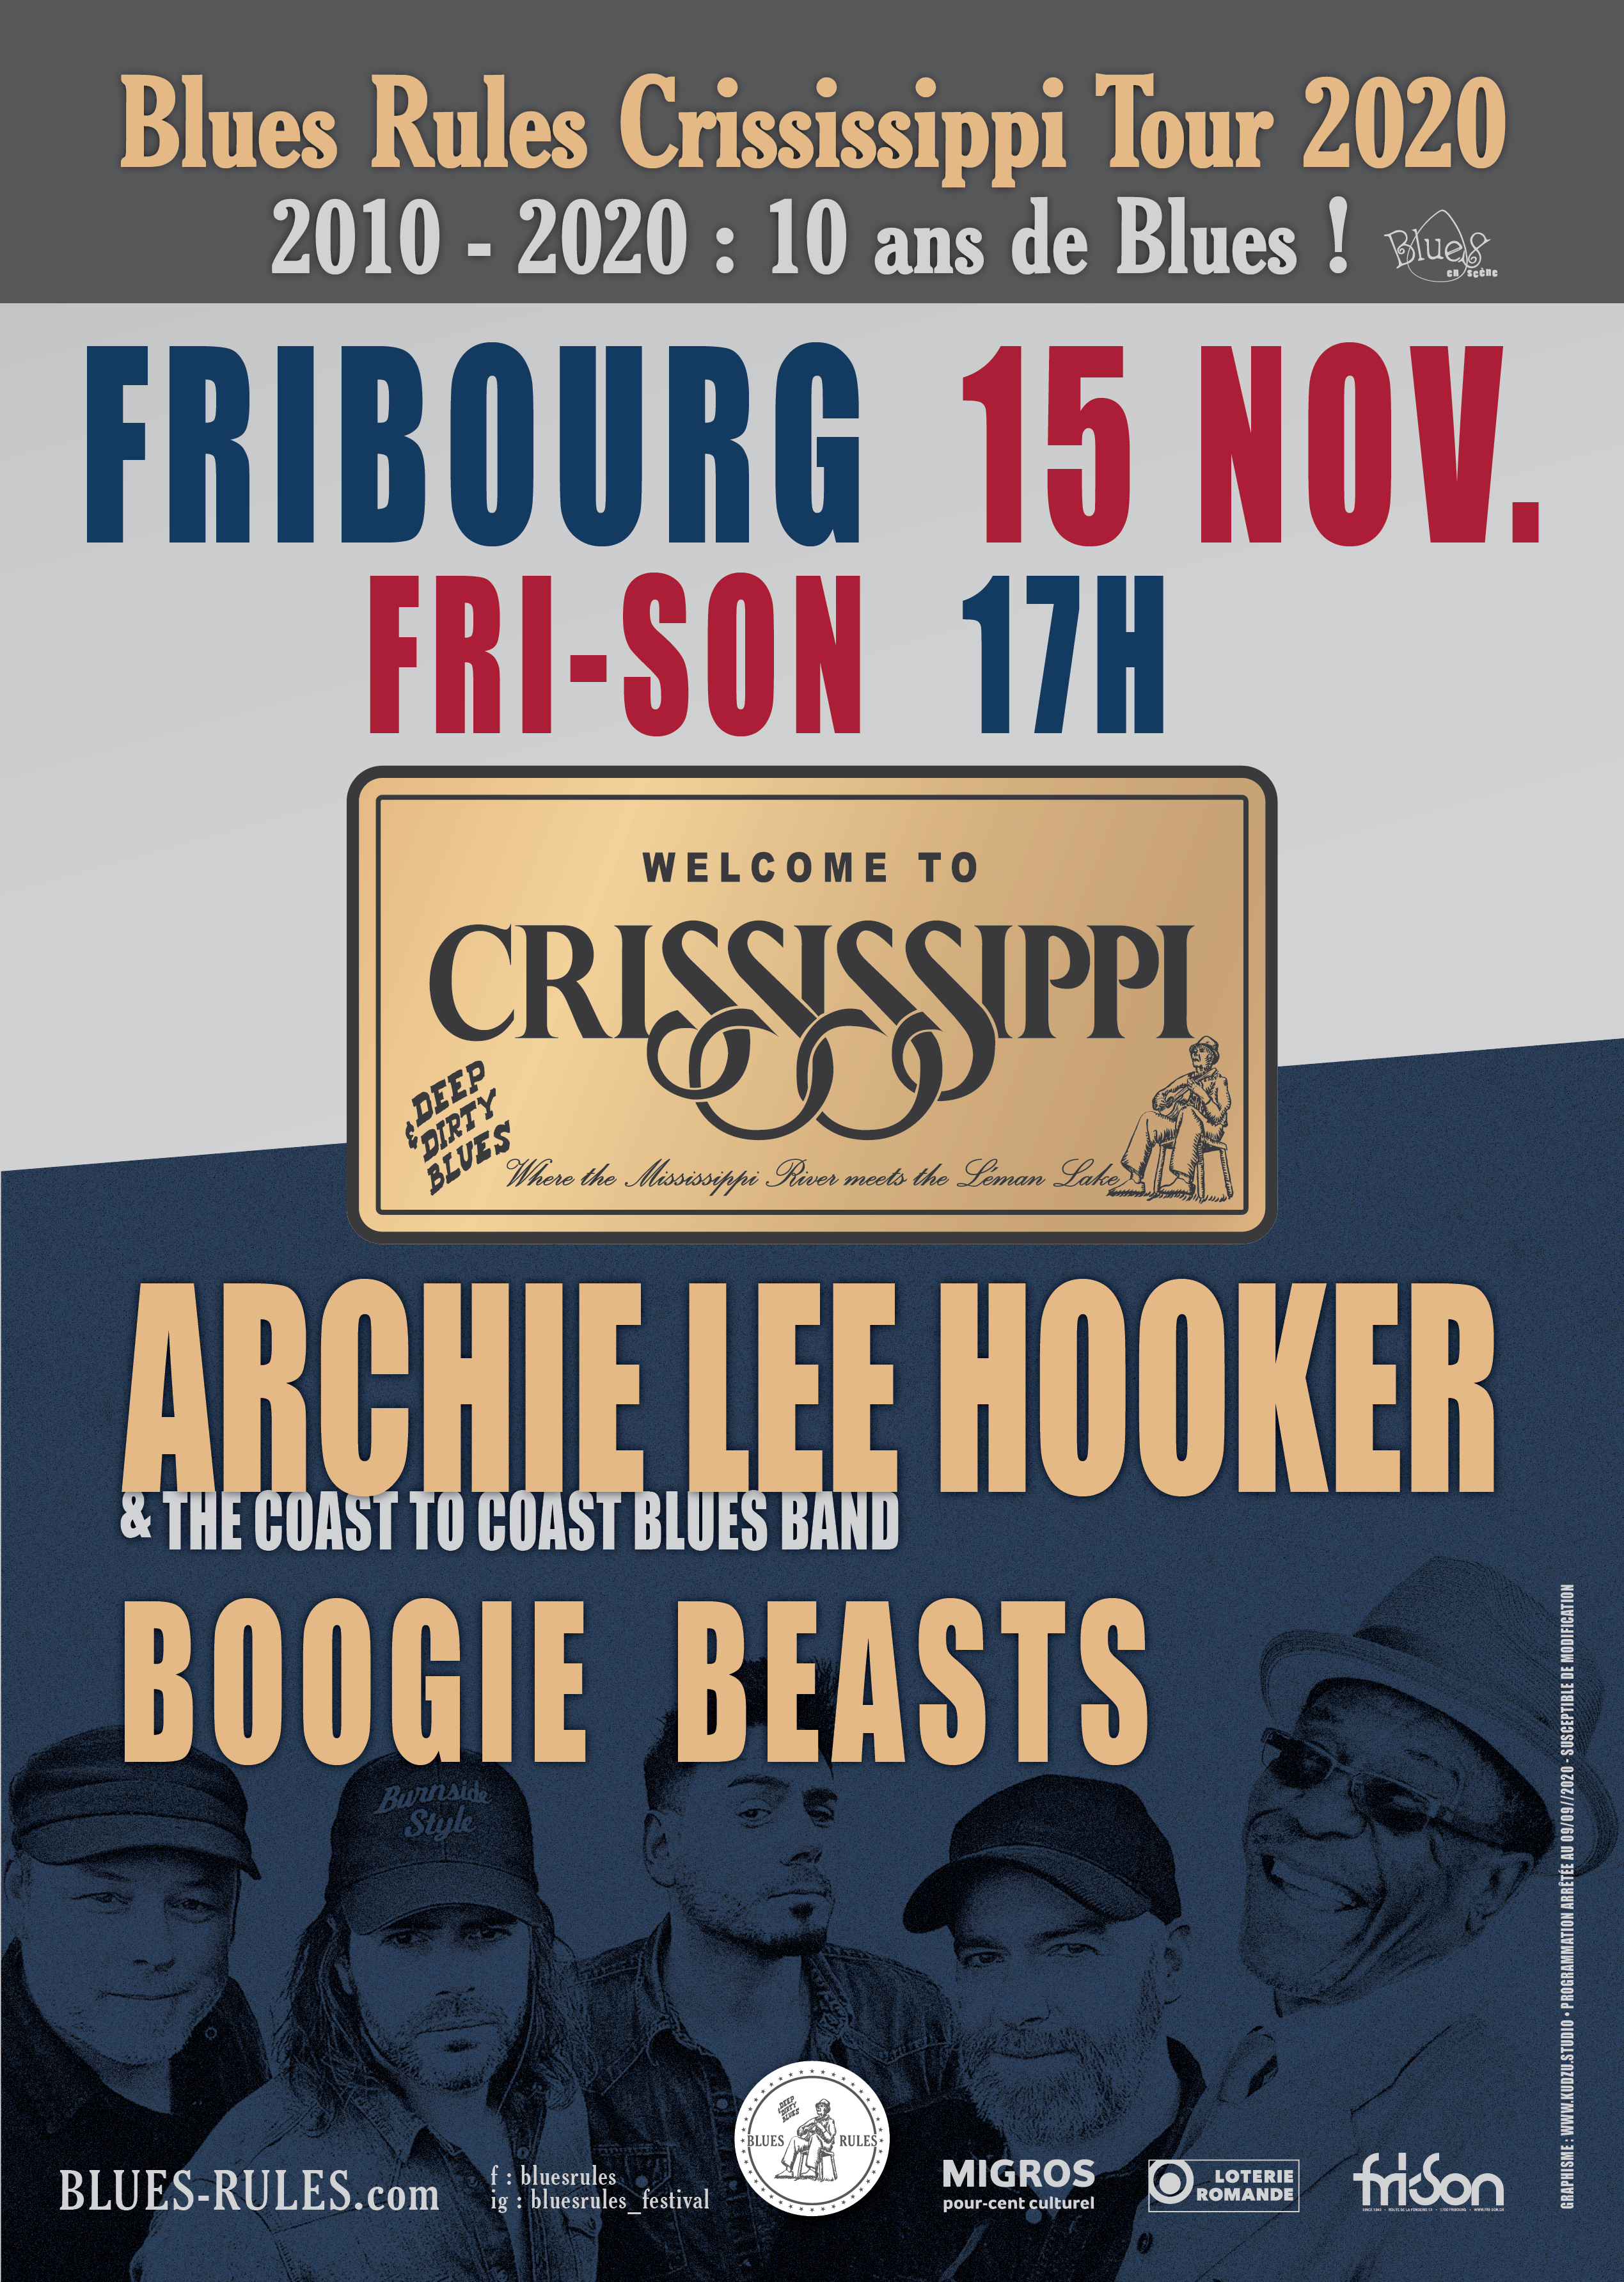 Crississippi tour 2020 fribourg